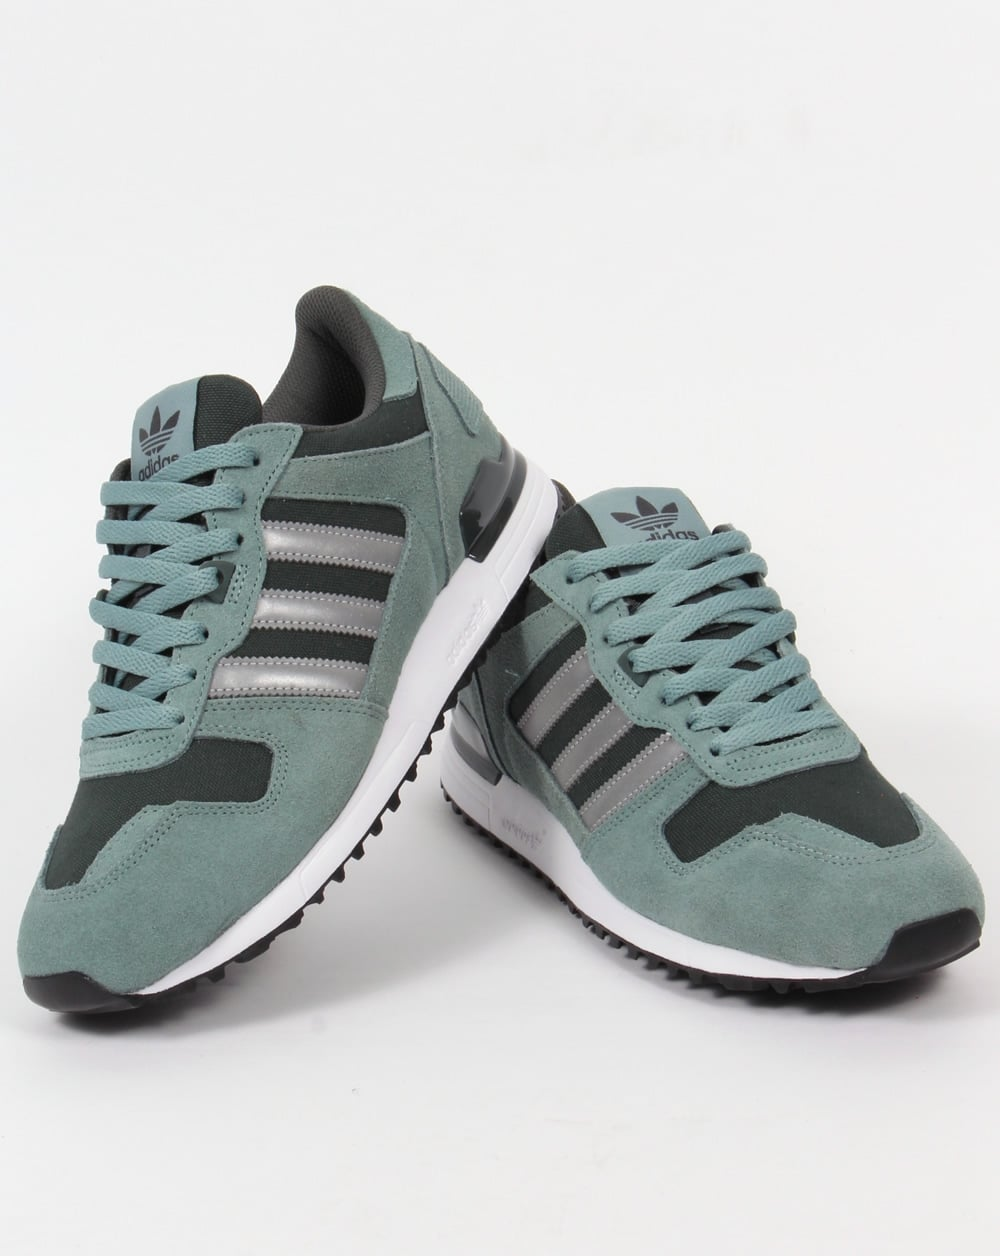 47db6fb45eb3b ... where to buy adidas zx 700 trainers methodology requirements for  medicaid 55cf1 8a730